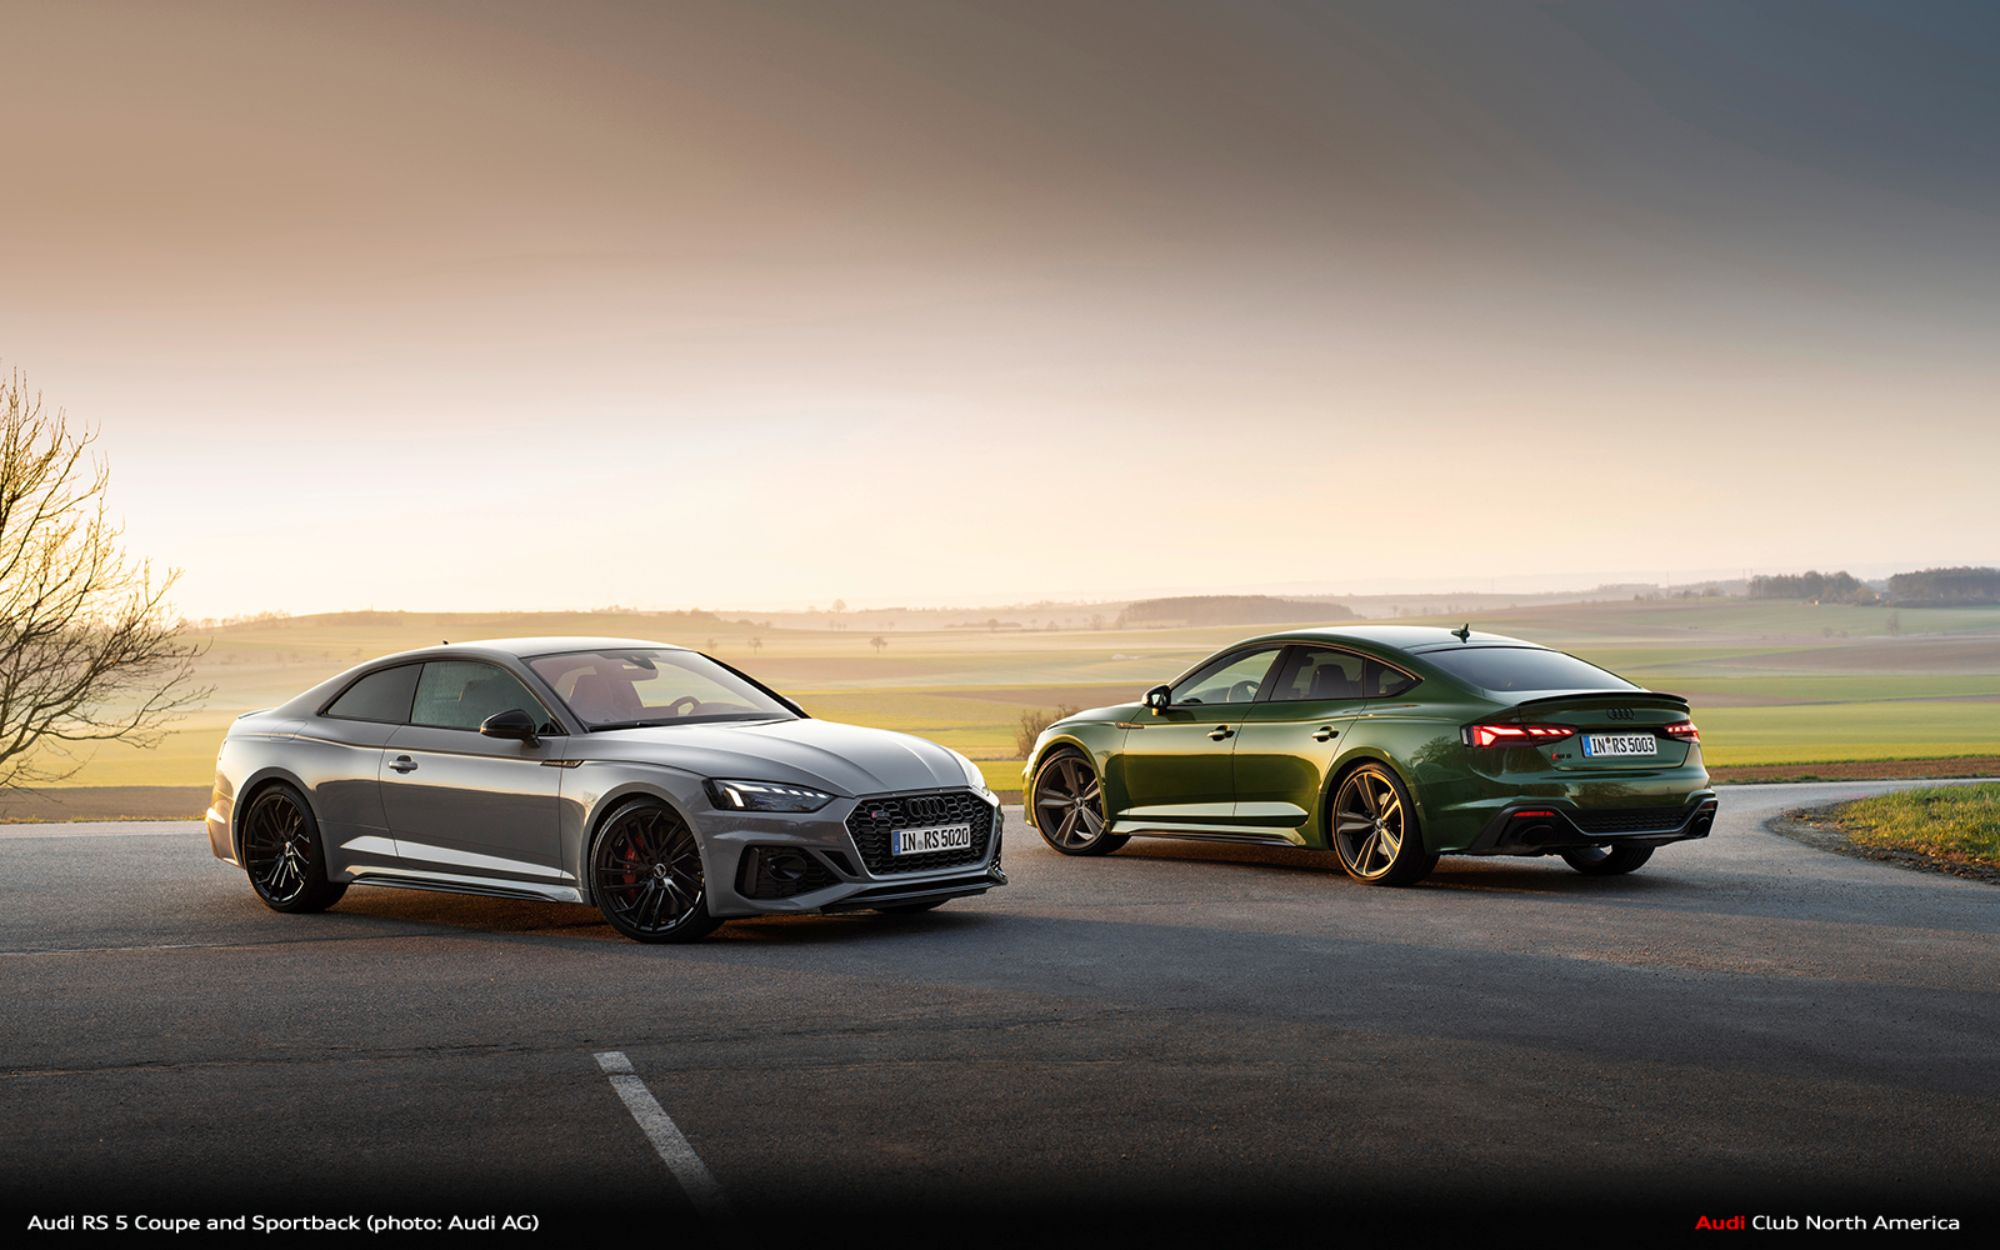 The Sporty Spearhead of the Product Line with a New Look: the RS 5 Coupé and RS 5 Sportback